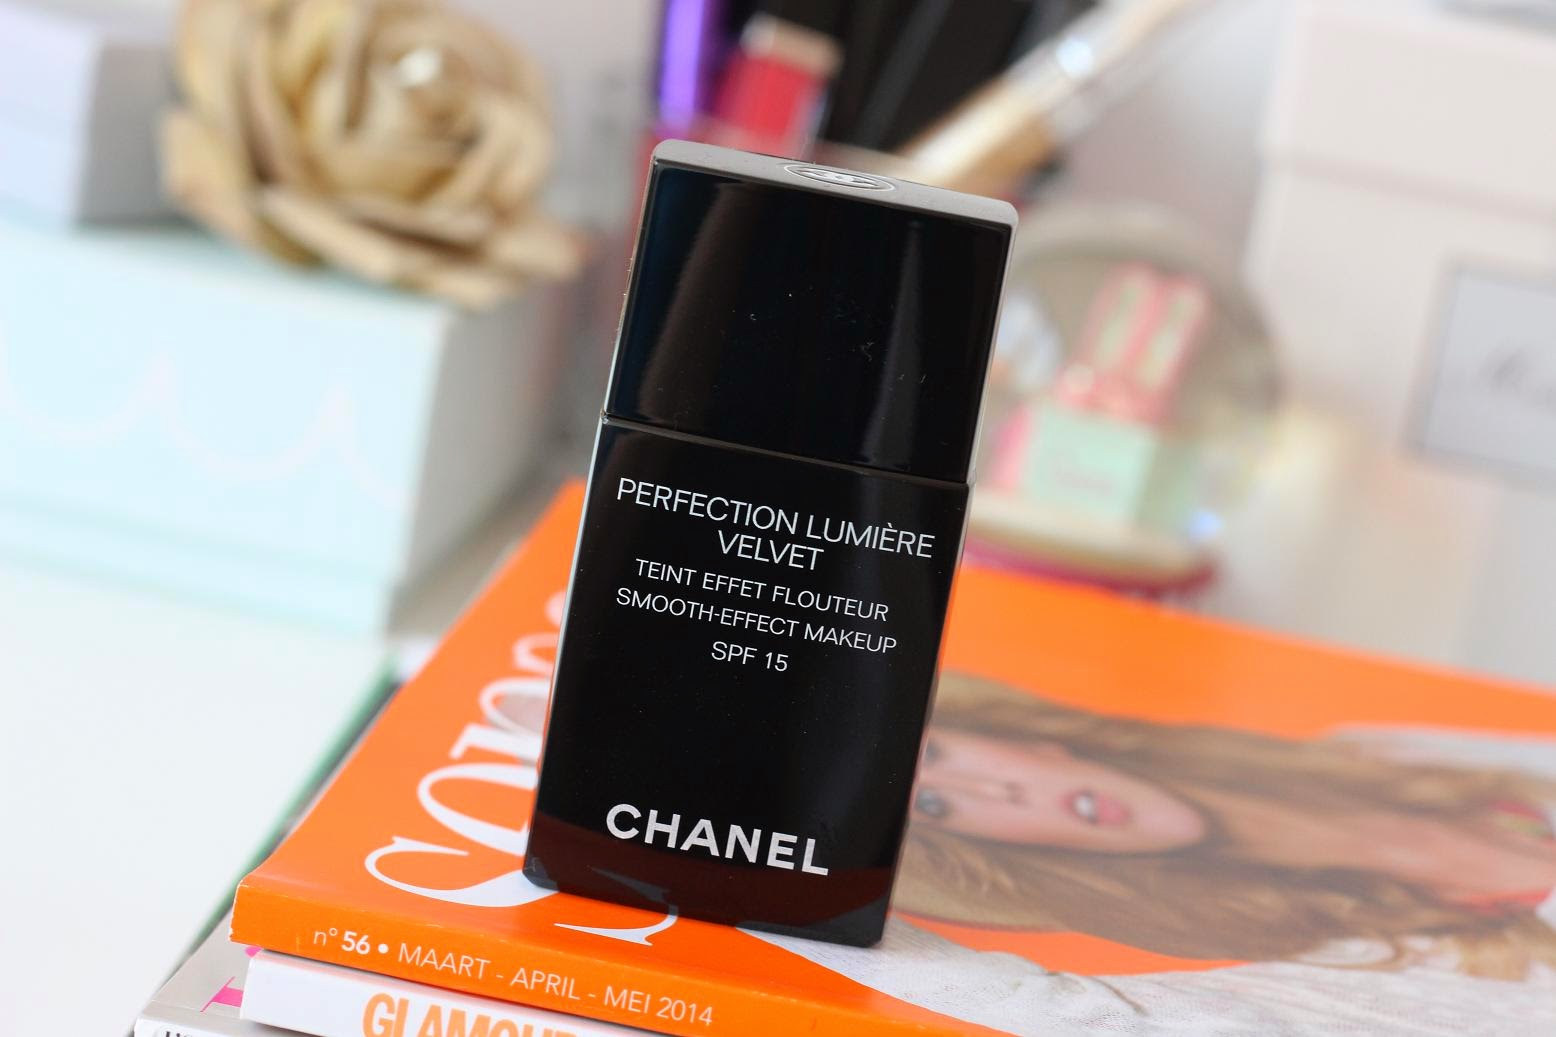 Chanel Perfection Lumière Velvet foundation